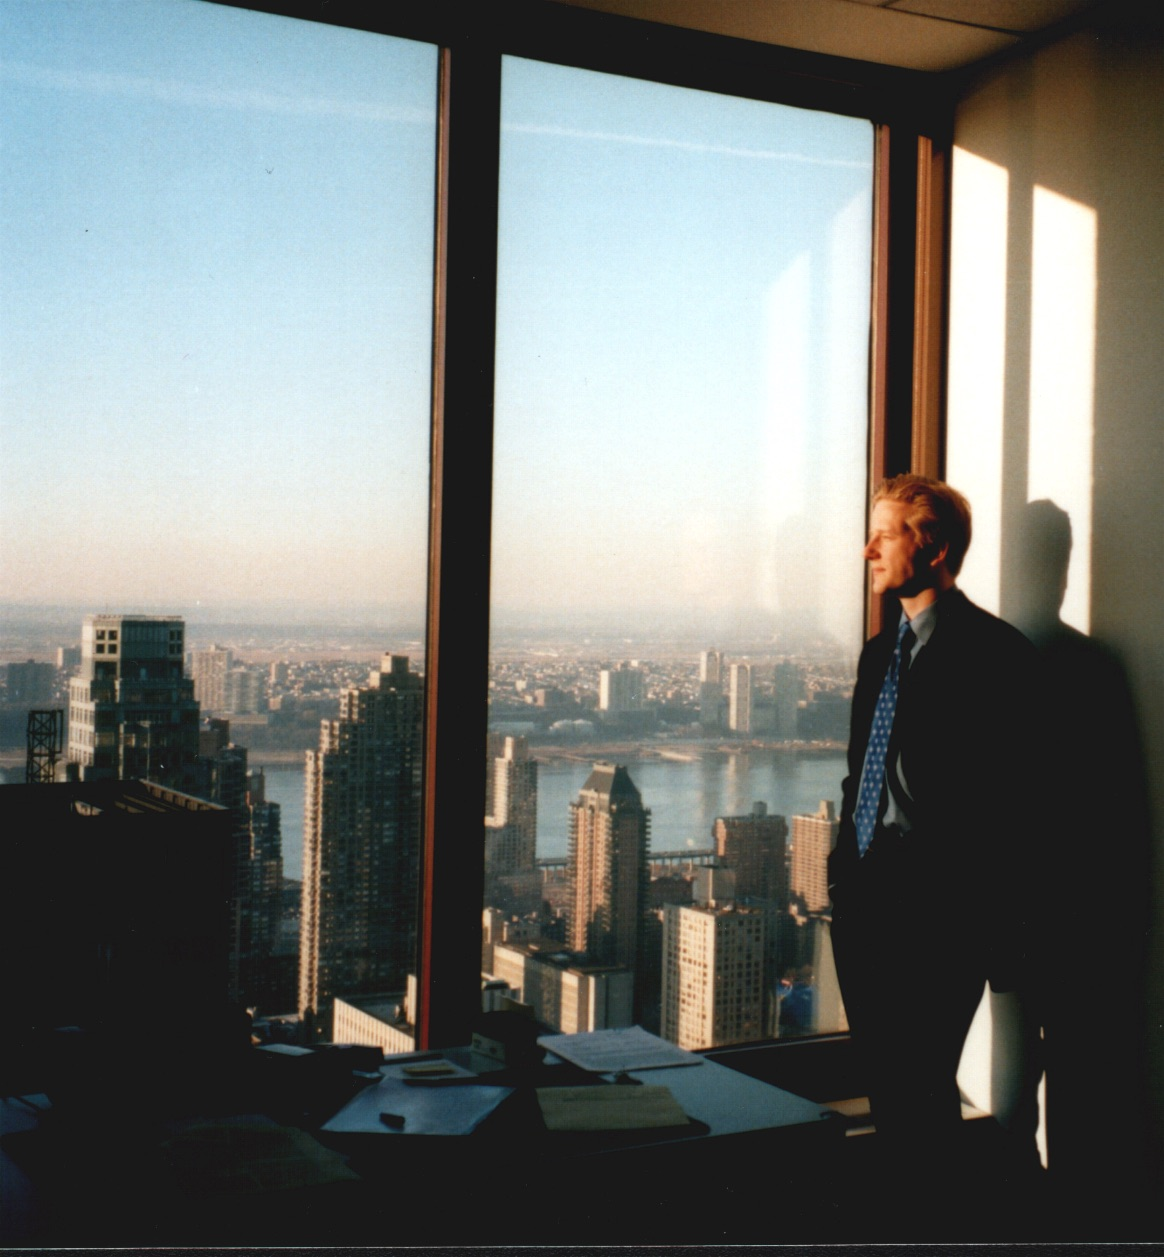 Close to my desk – taken in Manhattan, Carnegie Hall Tower, interning for a large firm, a long long time ago. There were no smart phones, not even digital cameras; one of my fellow interns must have brought a camera for some reason and caught me staring into the sunset instead of at my files.